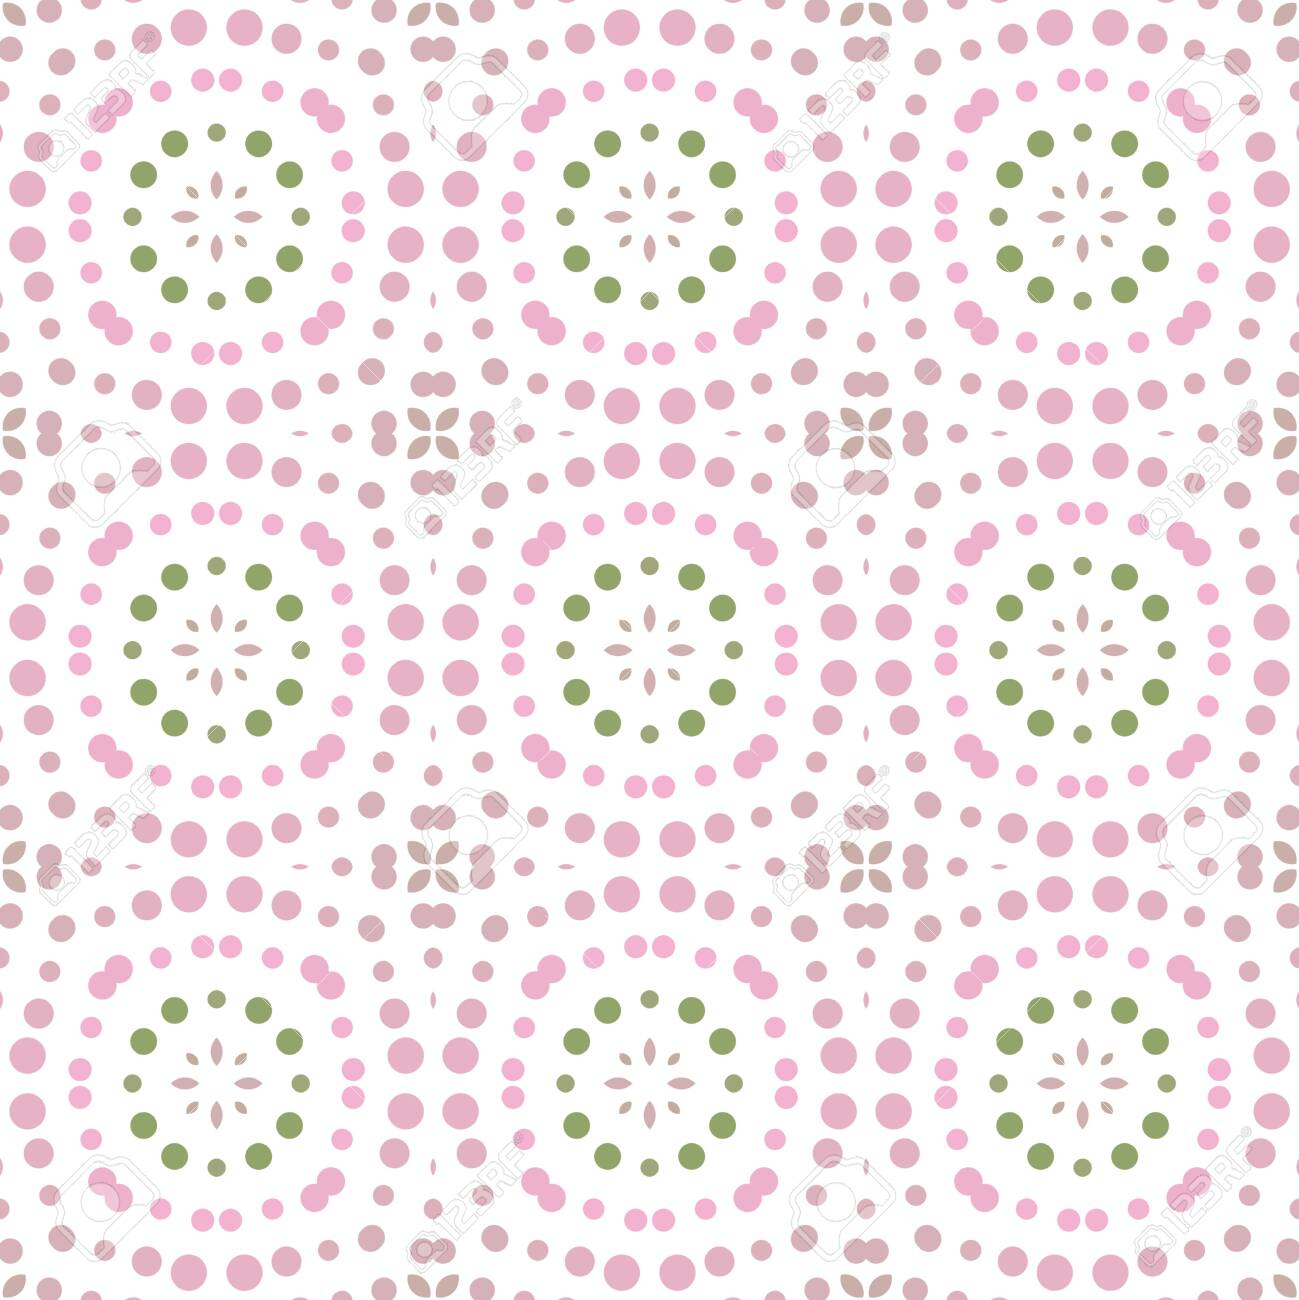 Seamless abstract pattern background with a variety of colored circles. - 141965498